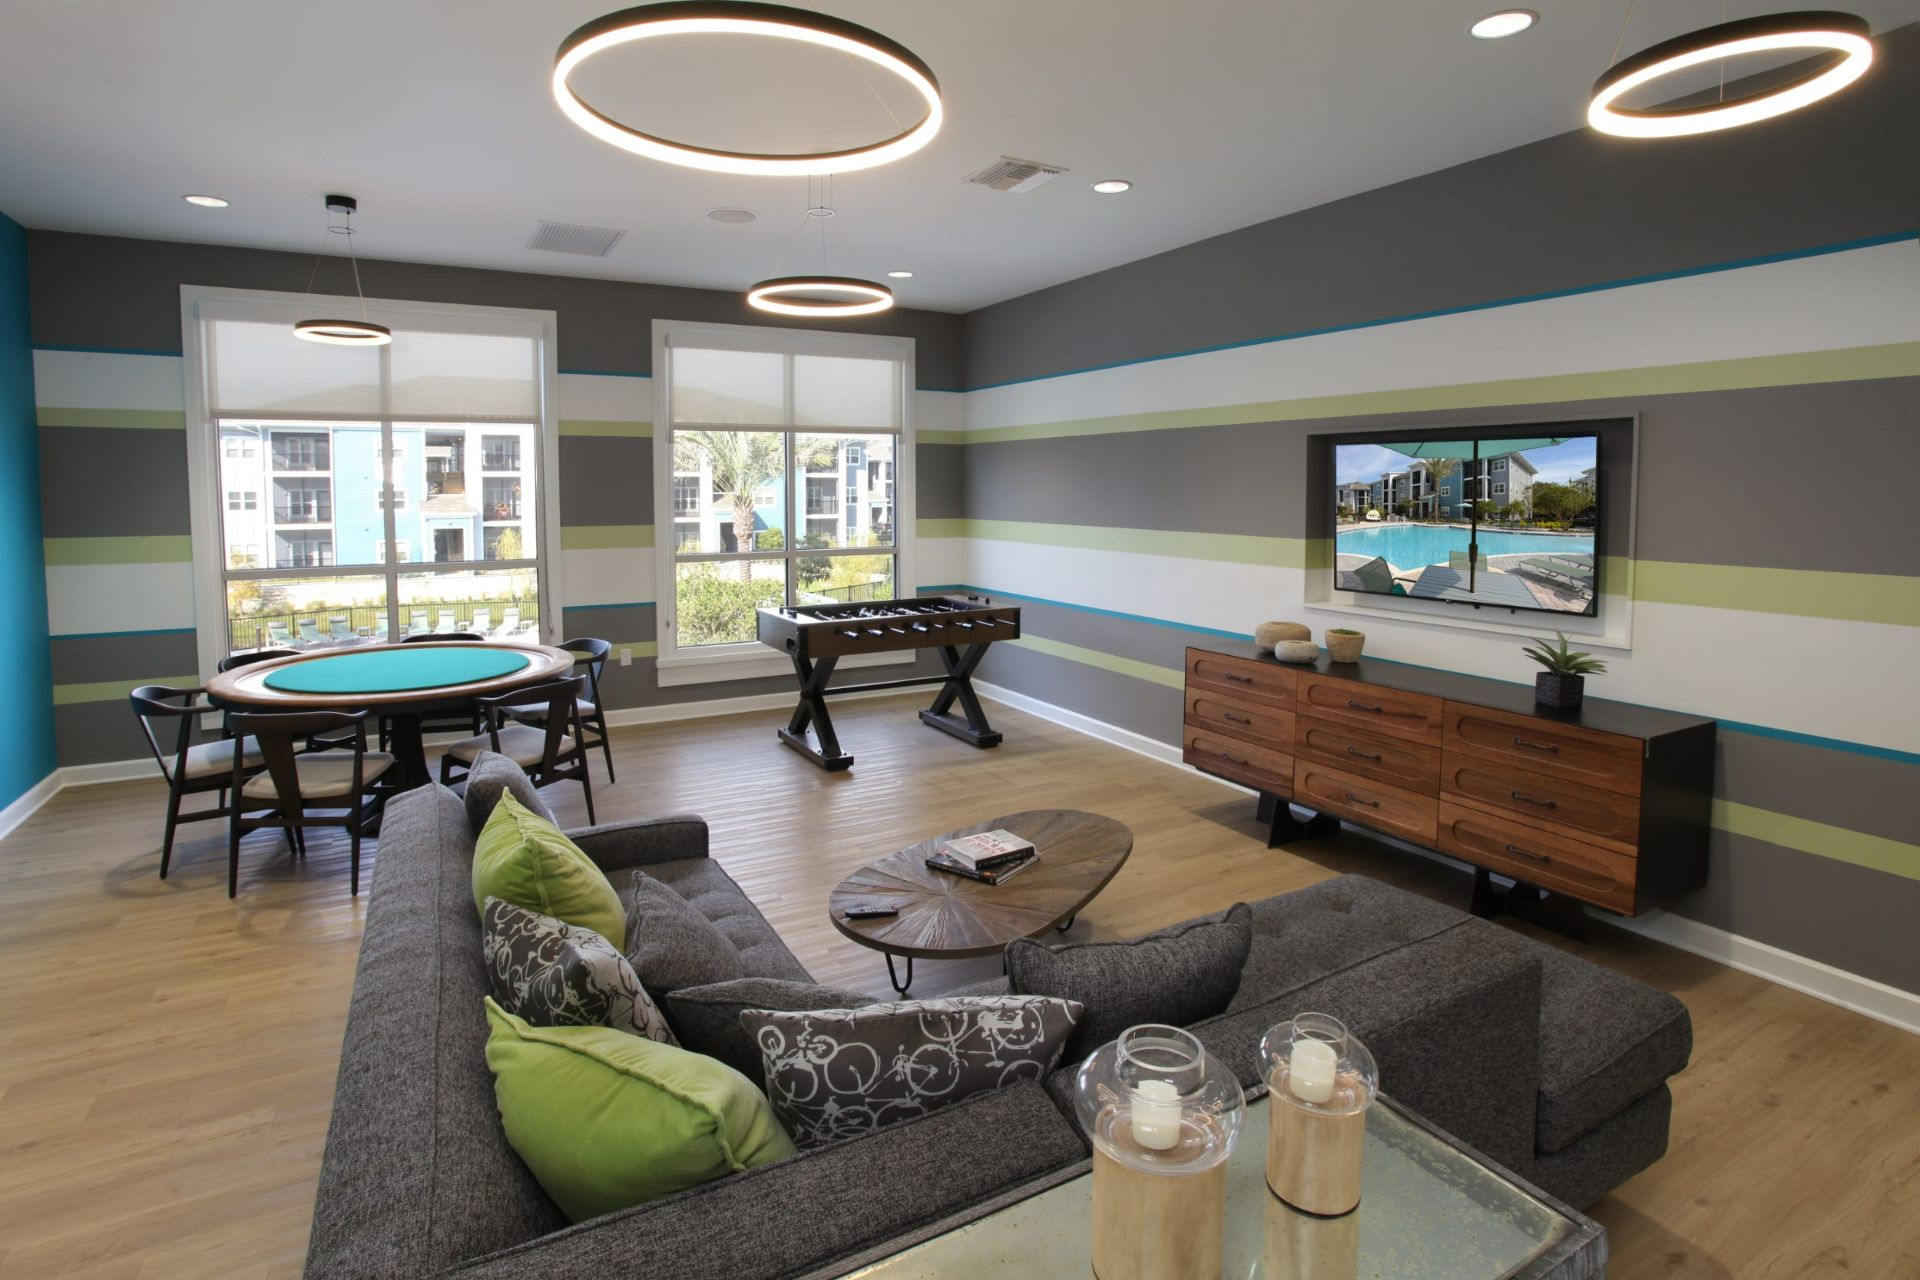 Clubhouse with gaming area and seating